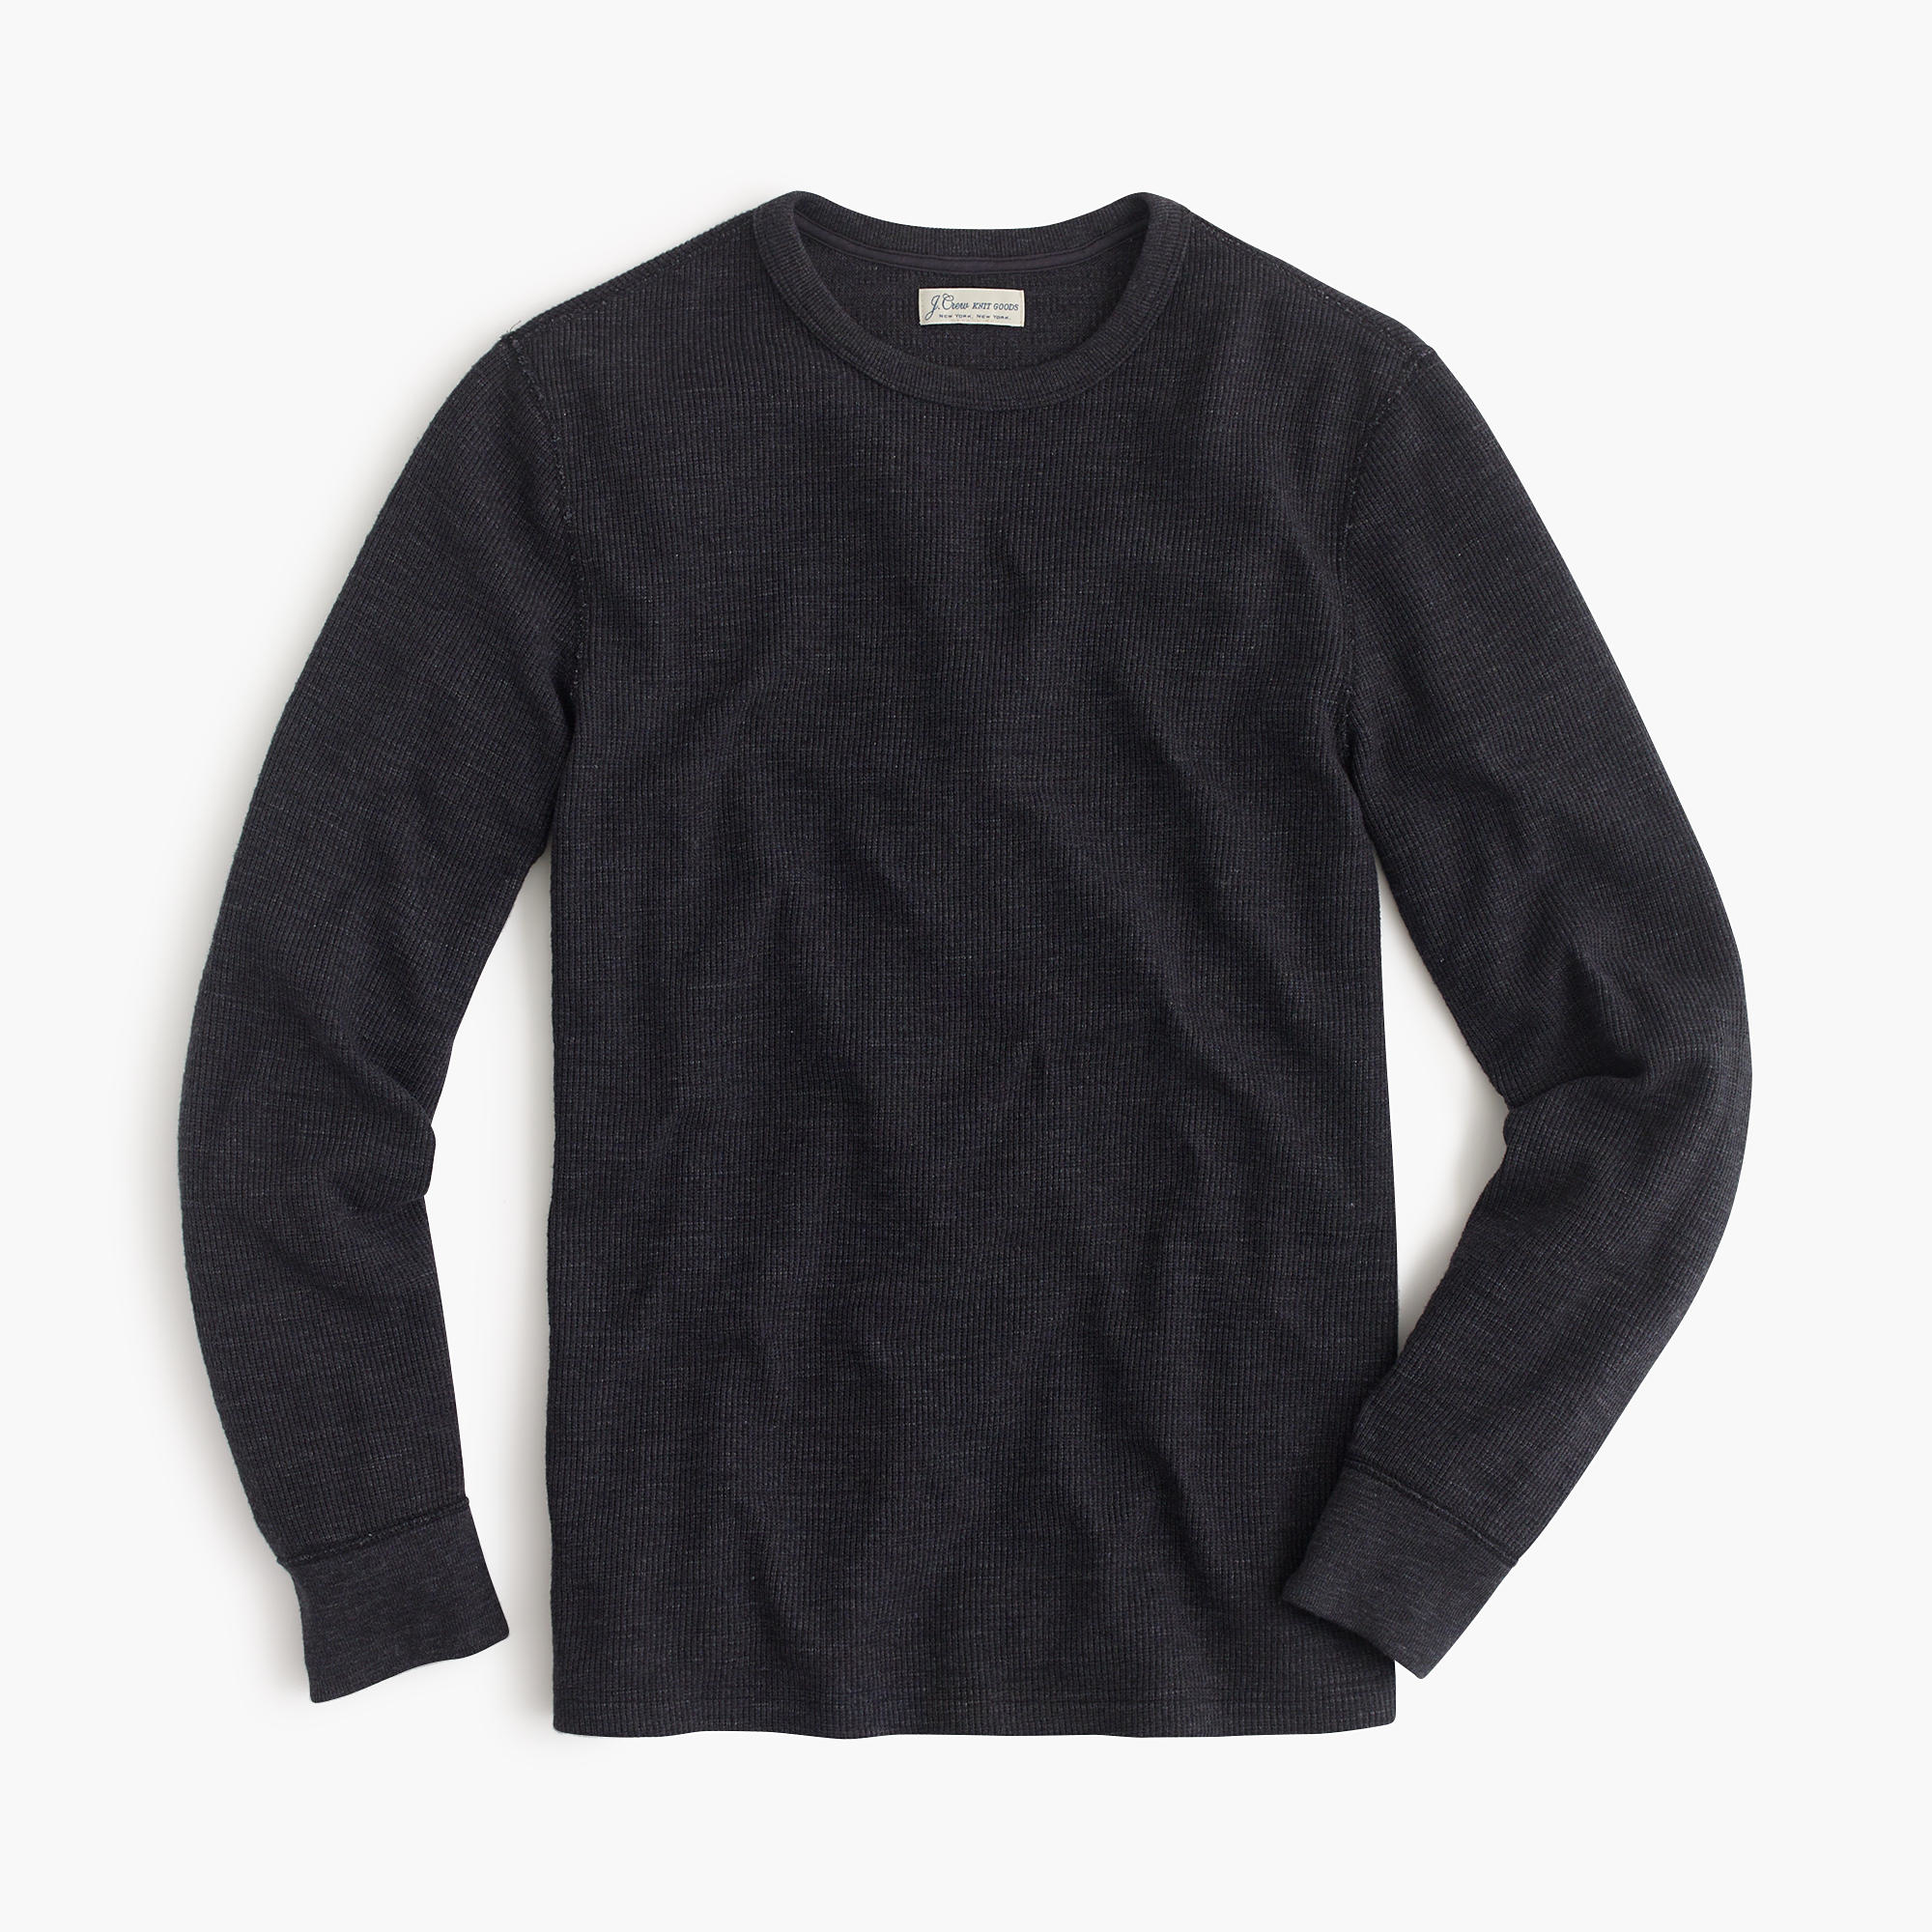 Slim long sleeve thermal t shirt in black for men for Mens black thermal t shirts